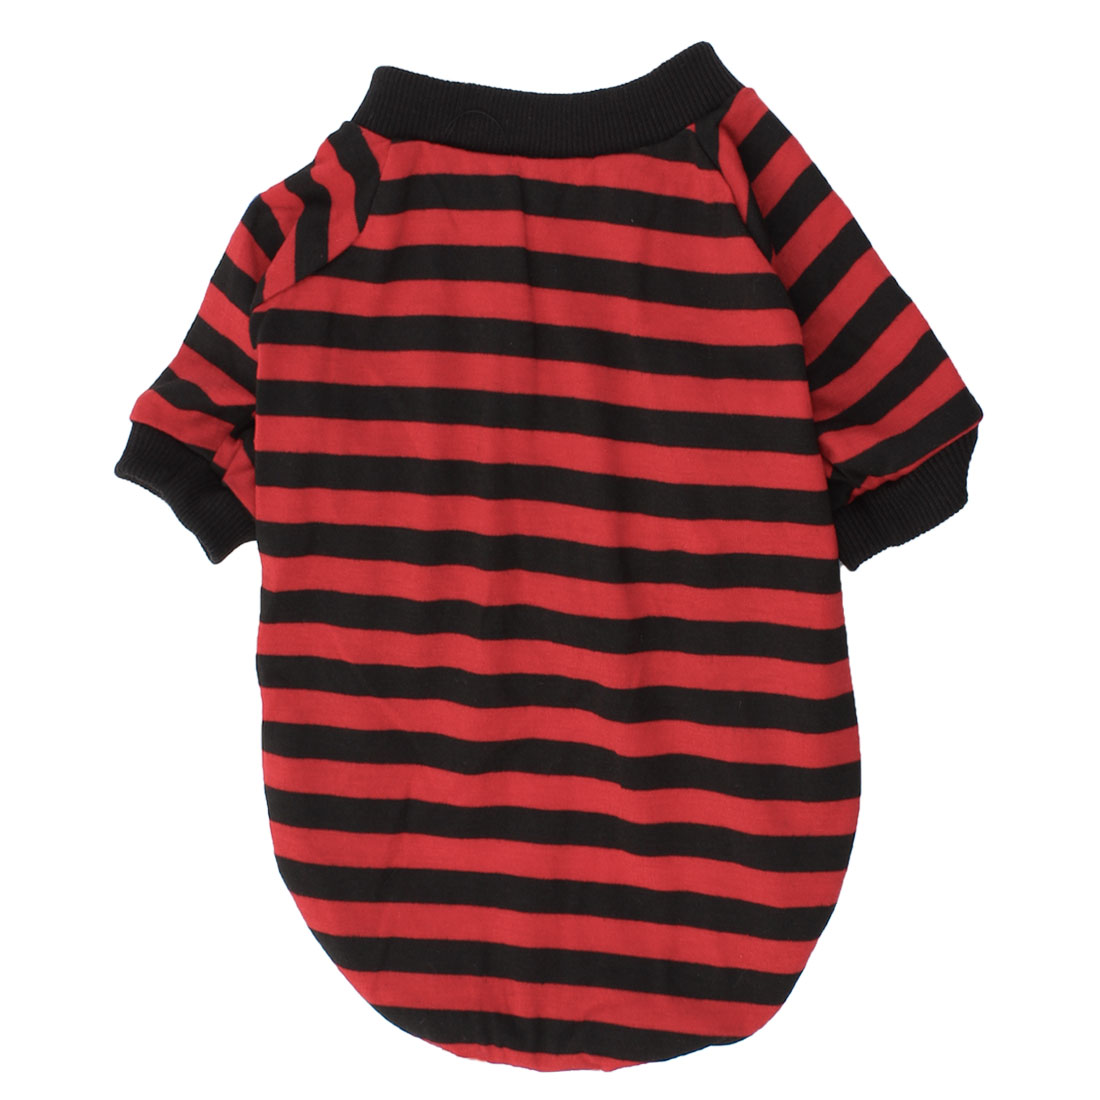 Round Collar Stripe Print Pet Dog Doggy T-shirt Apparel Red Black M